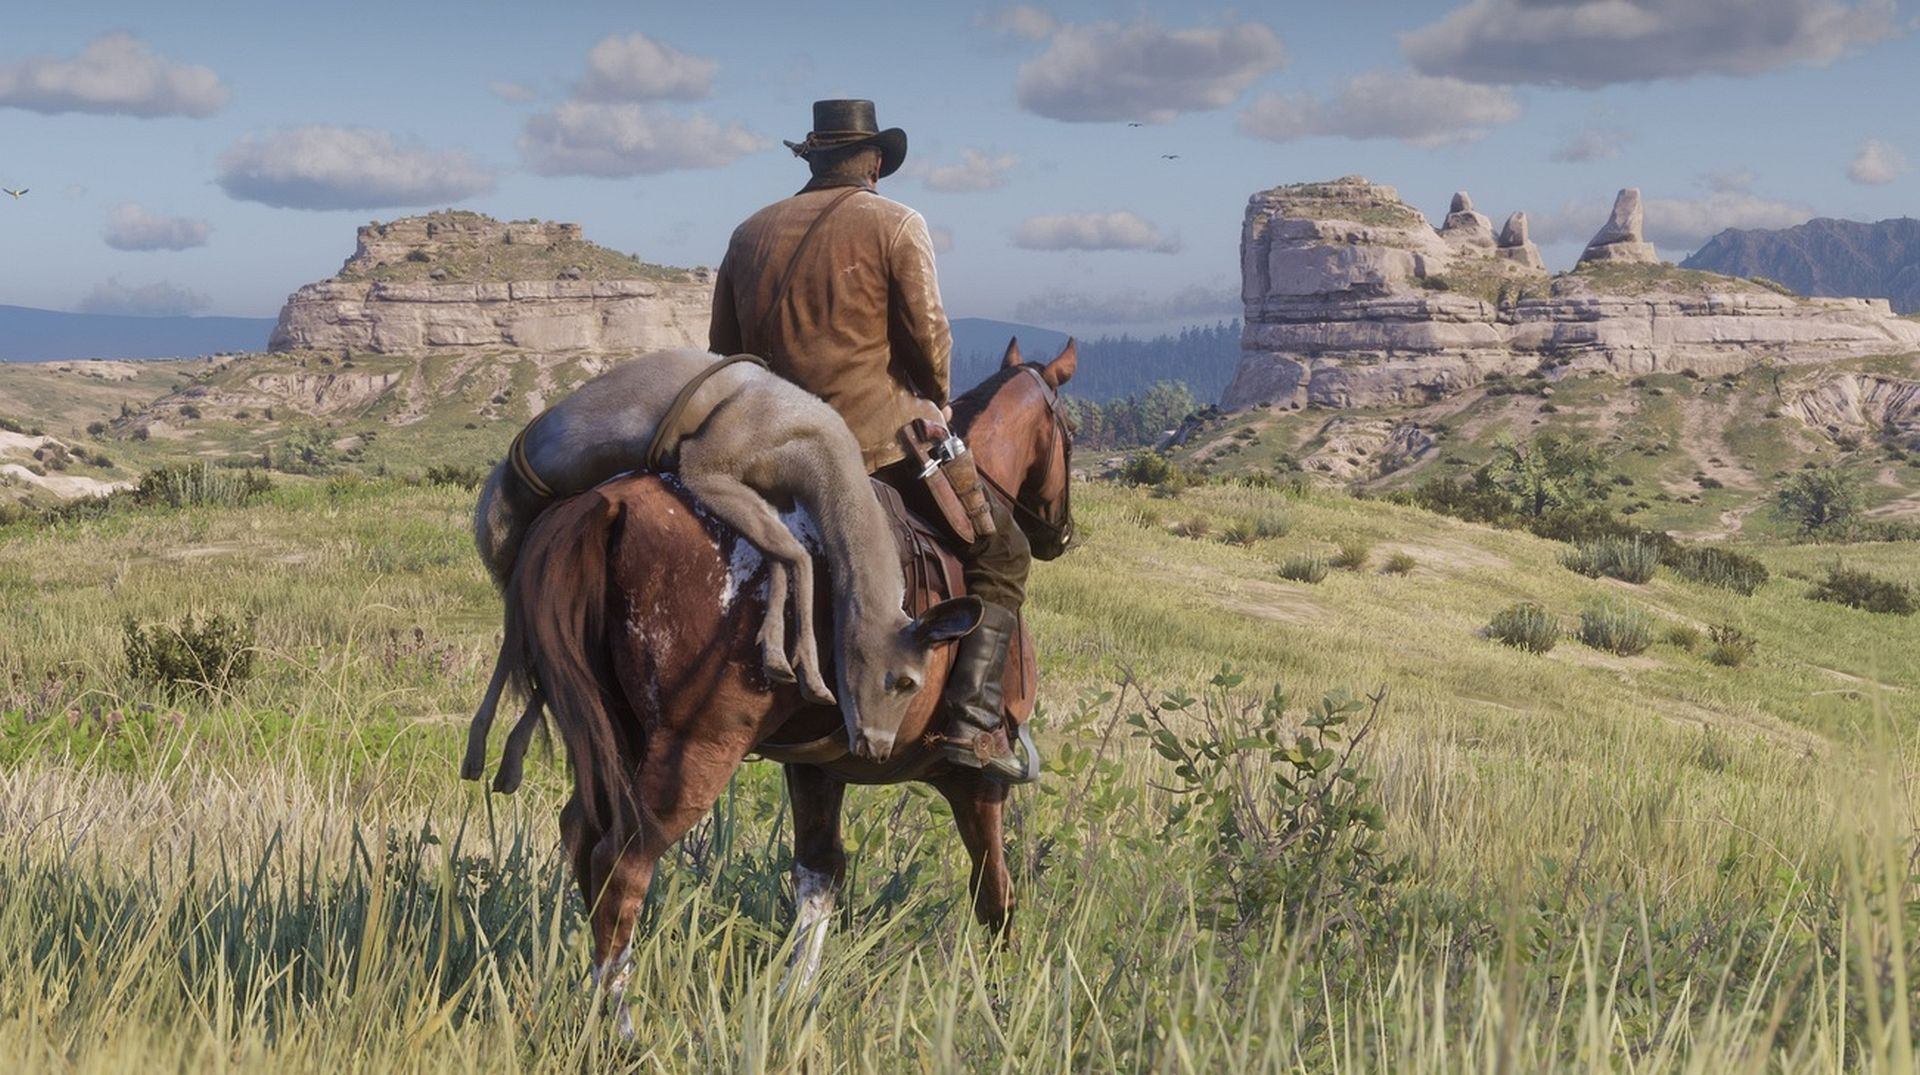 Red Dead Redemption 2 tips and tricks - techniques and hidden commands you might not know